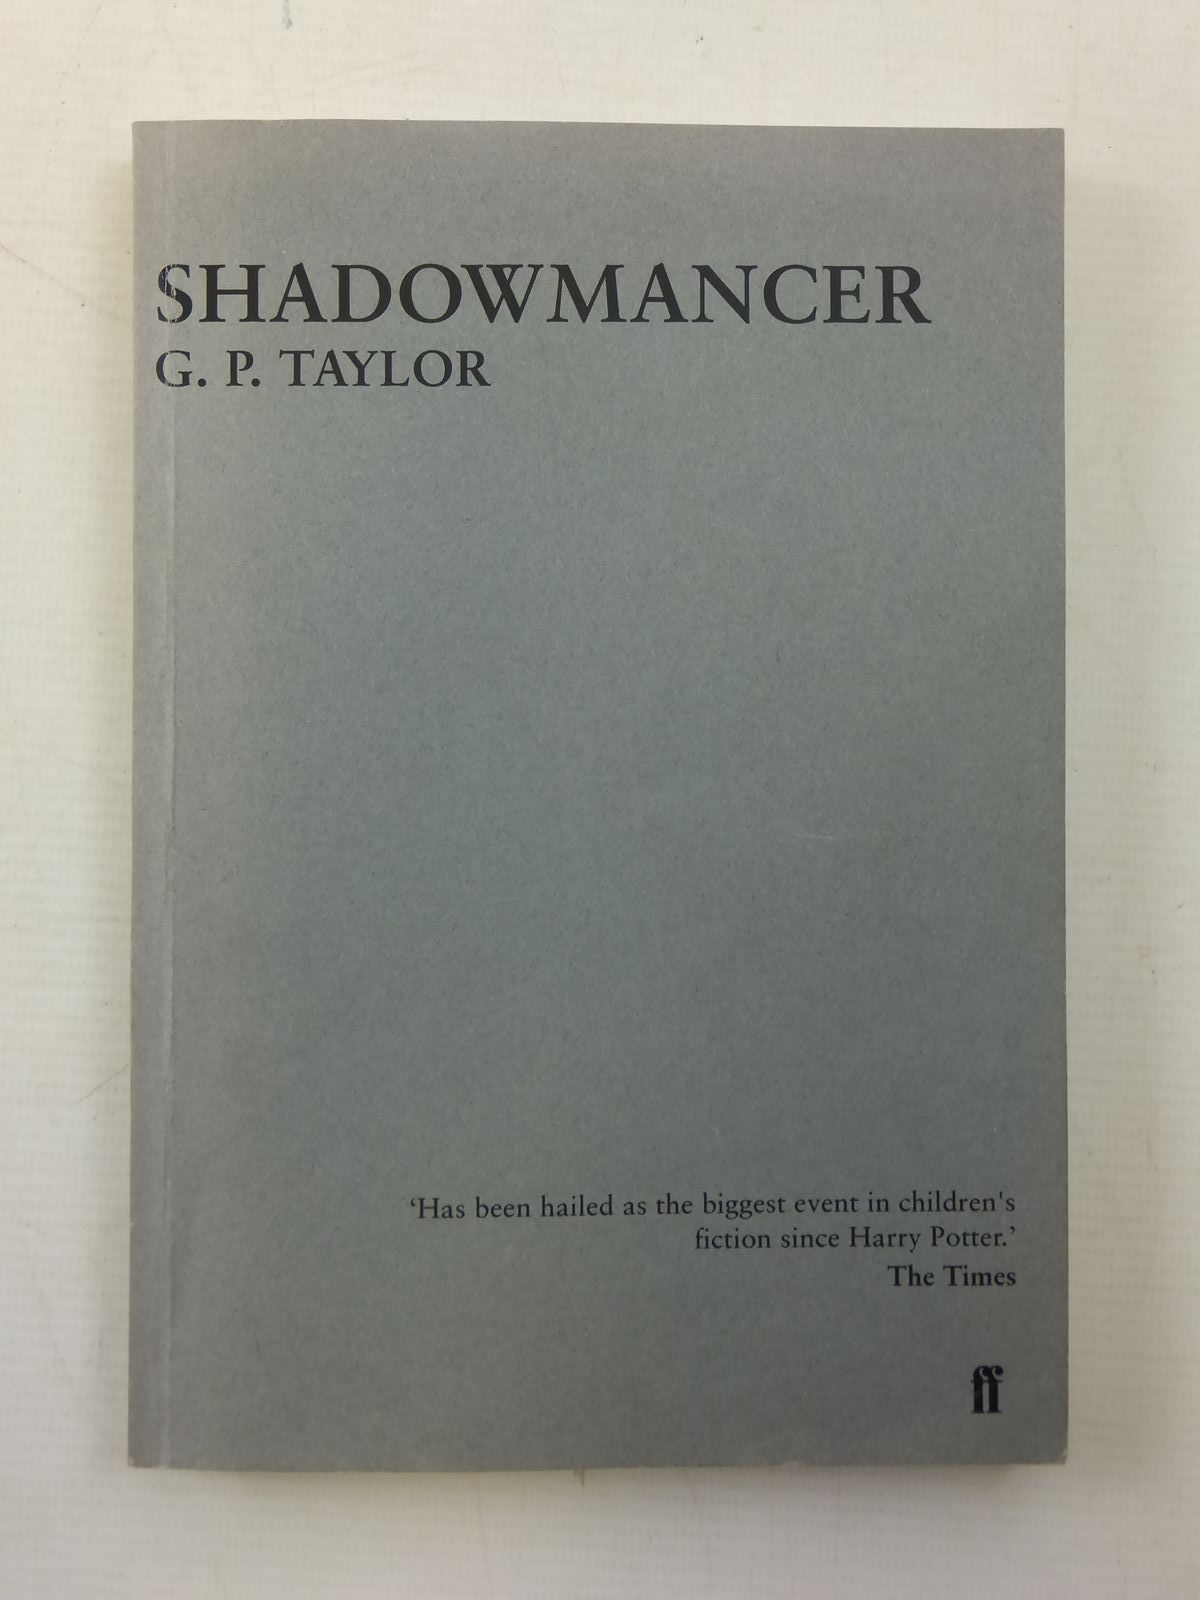 Photo of SHADOWMANCER written by Taylor, G.P. published by Faber & Faber Ltd. (STOCK CODE: 1207795)  for sale by Stella & Rose's Books